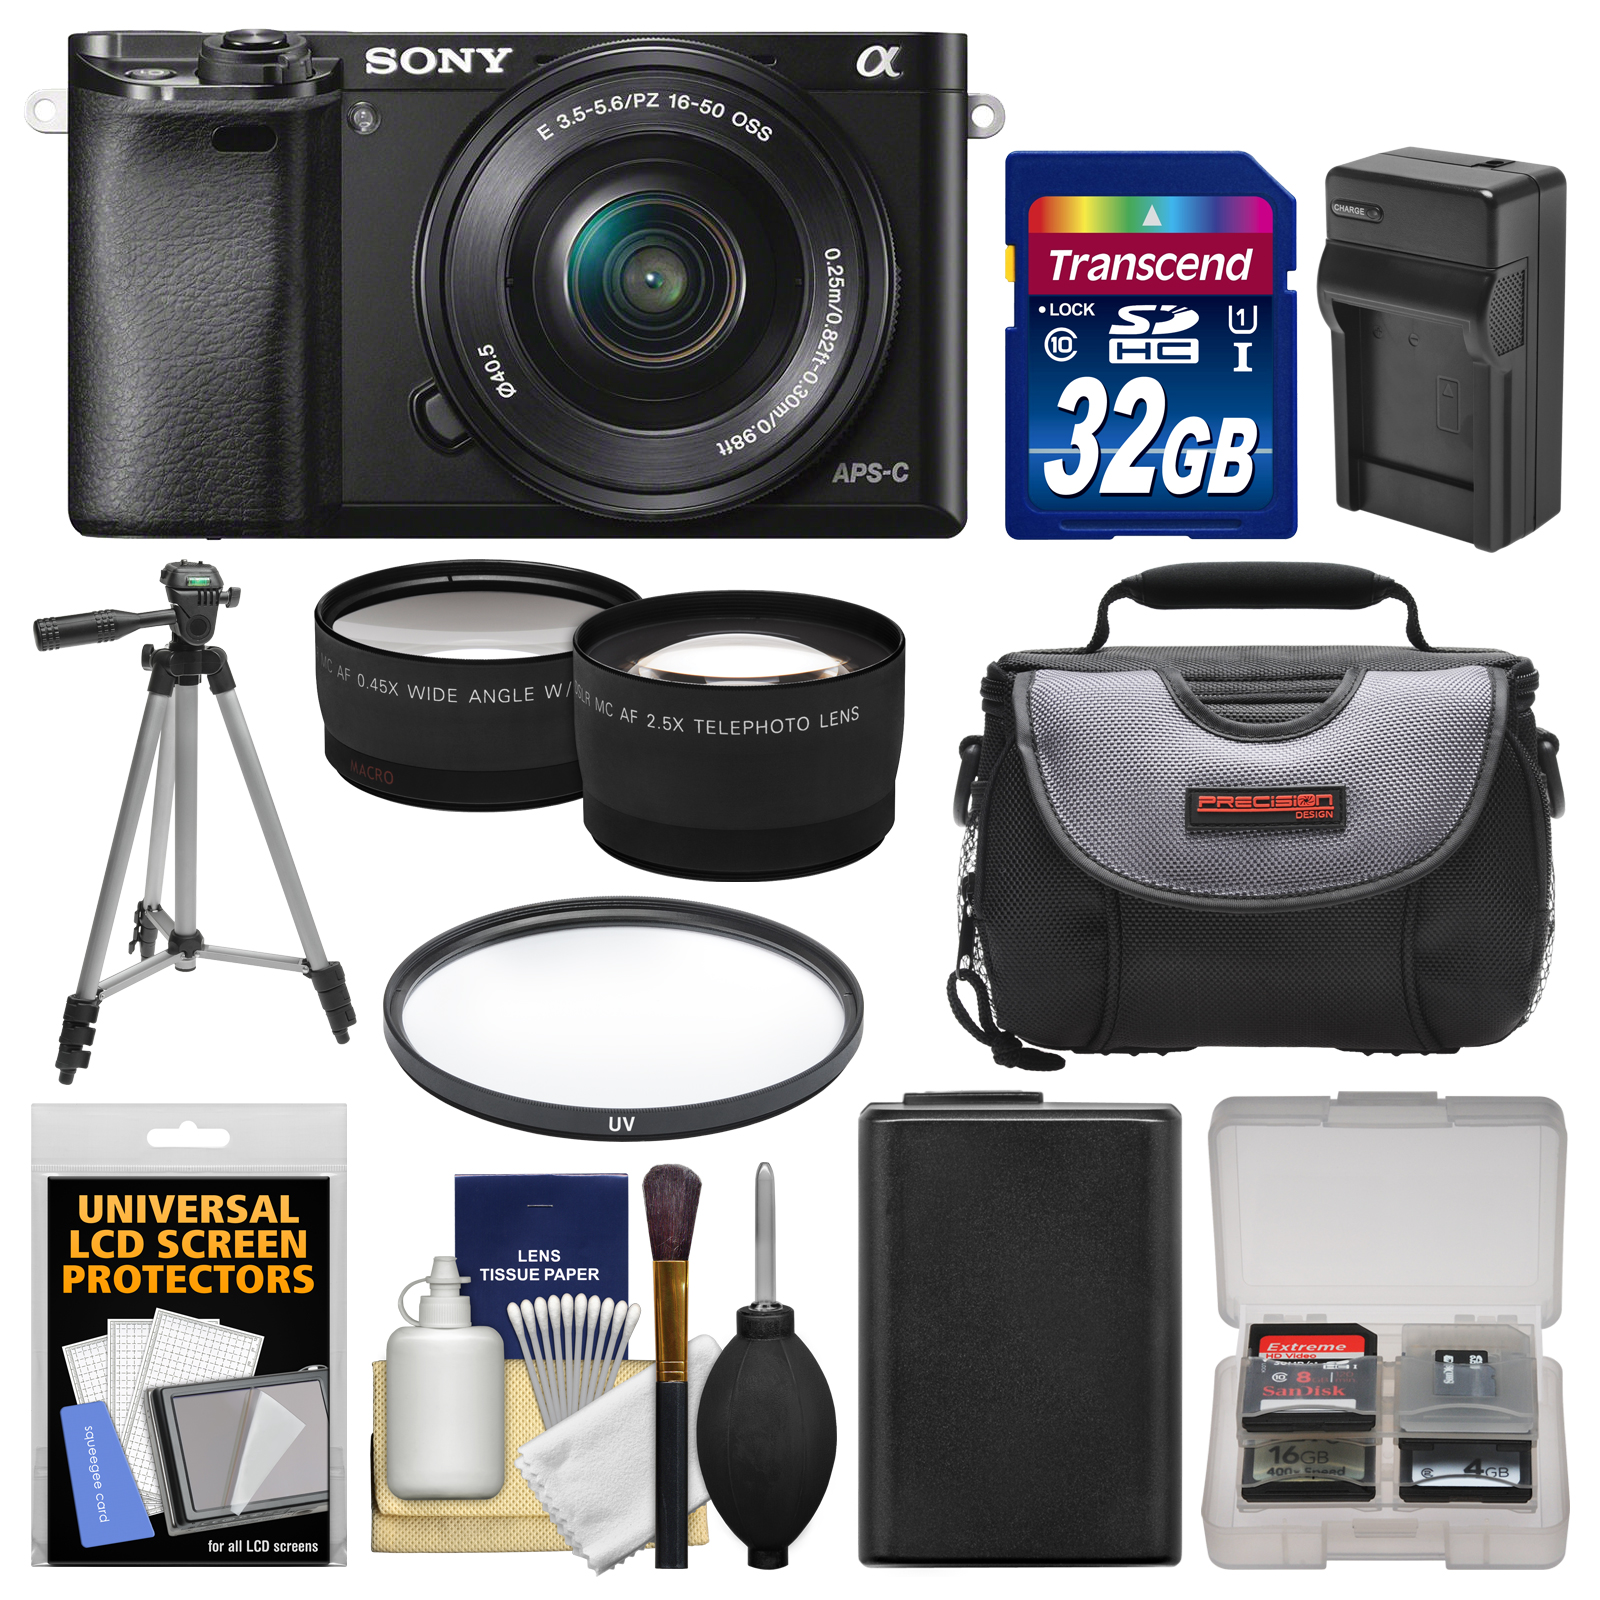 Sony Alpha A6000 Wi-Fi Digital Camera & 16-50mm Lens with 32GB Card + Case + Battery... by Sony